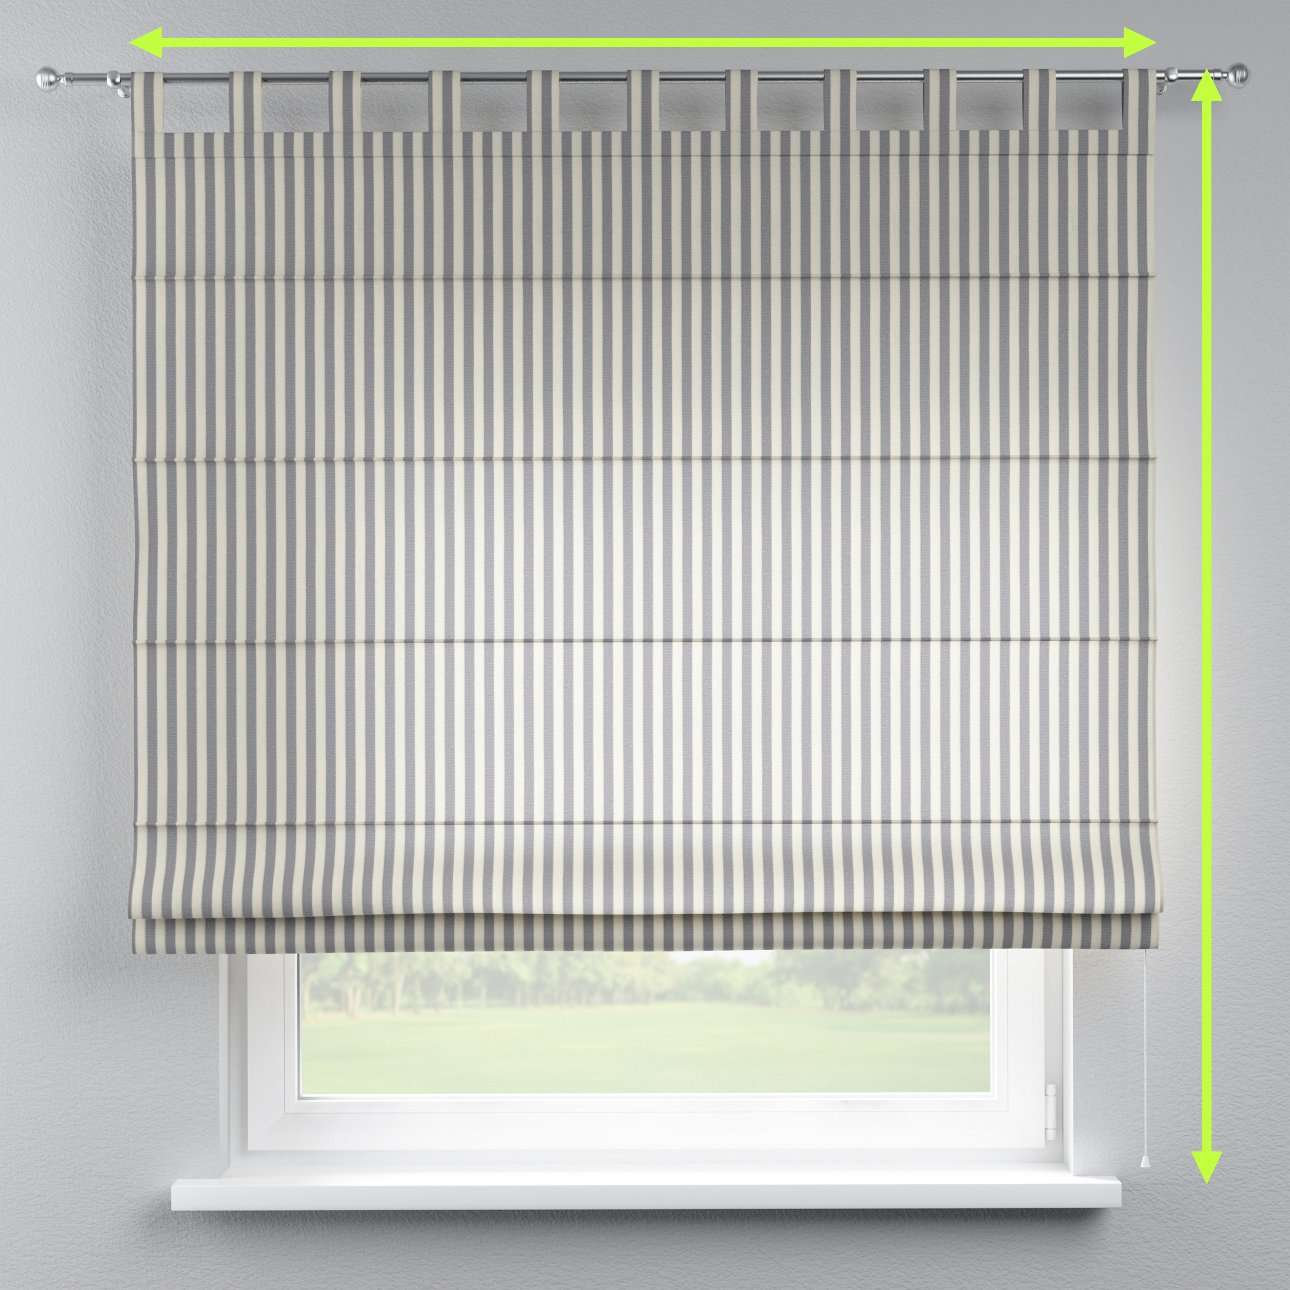 Verona tab top roman blind in collection Quadro, fabric: 136-02